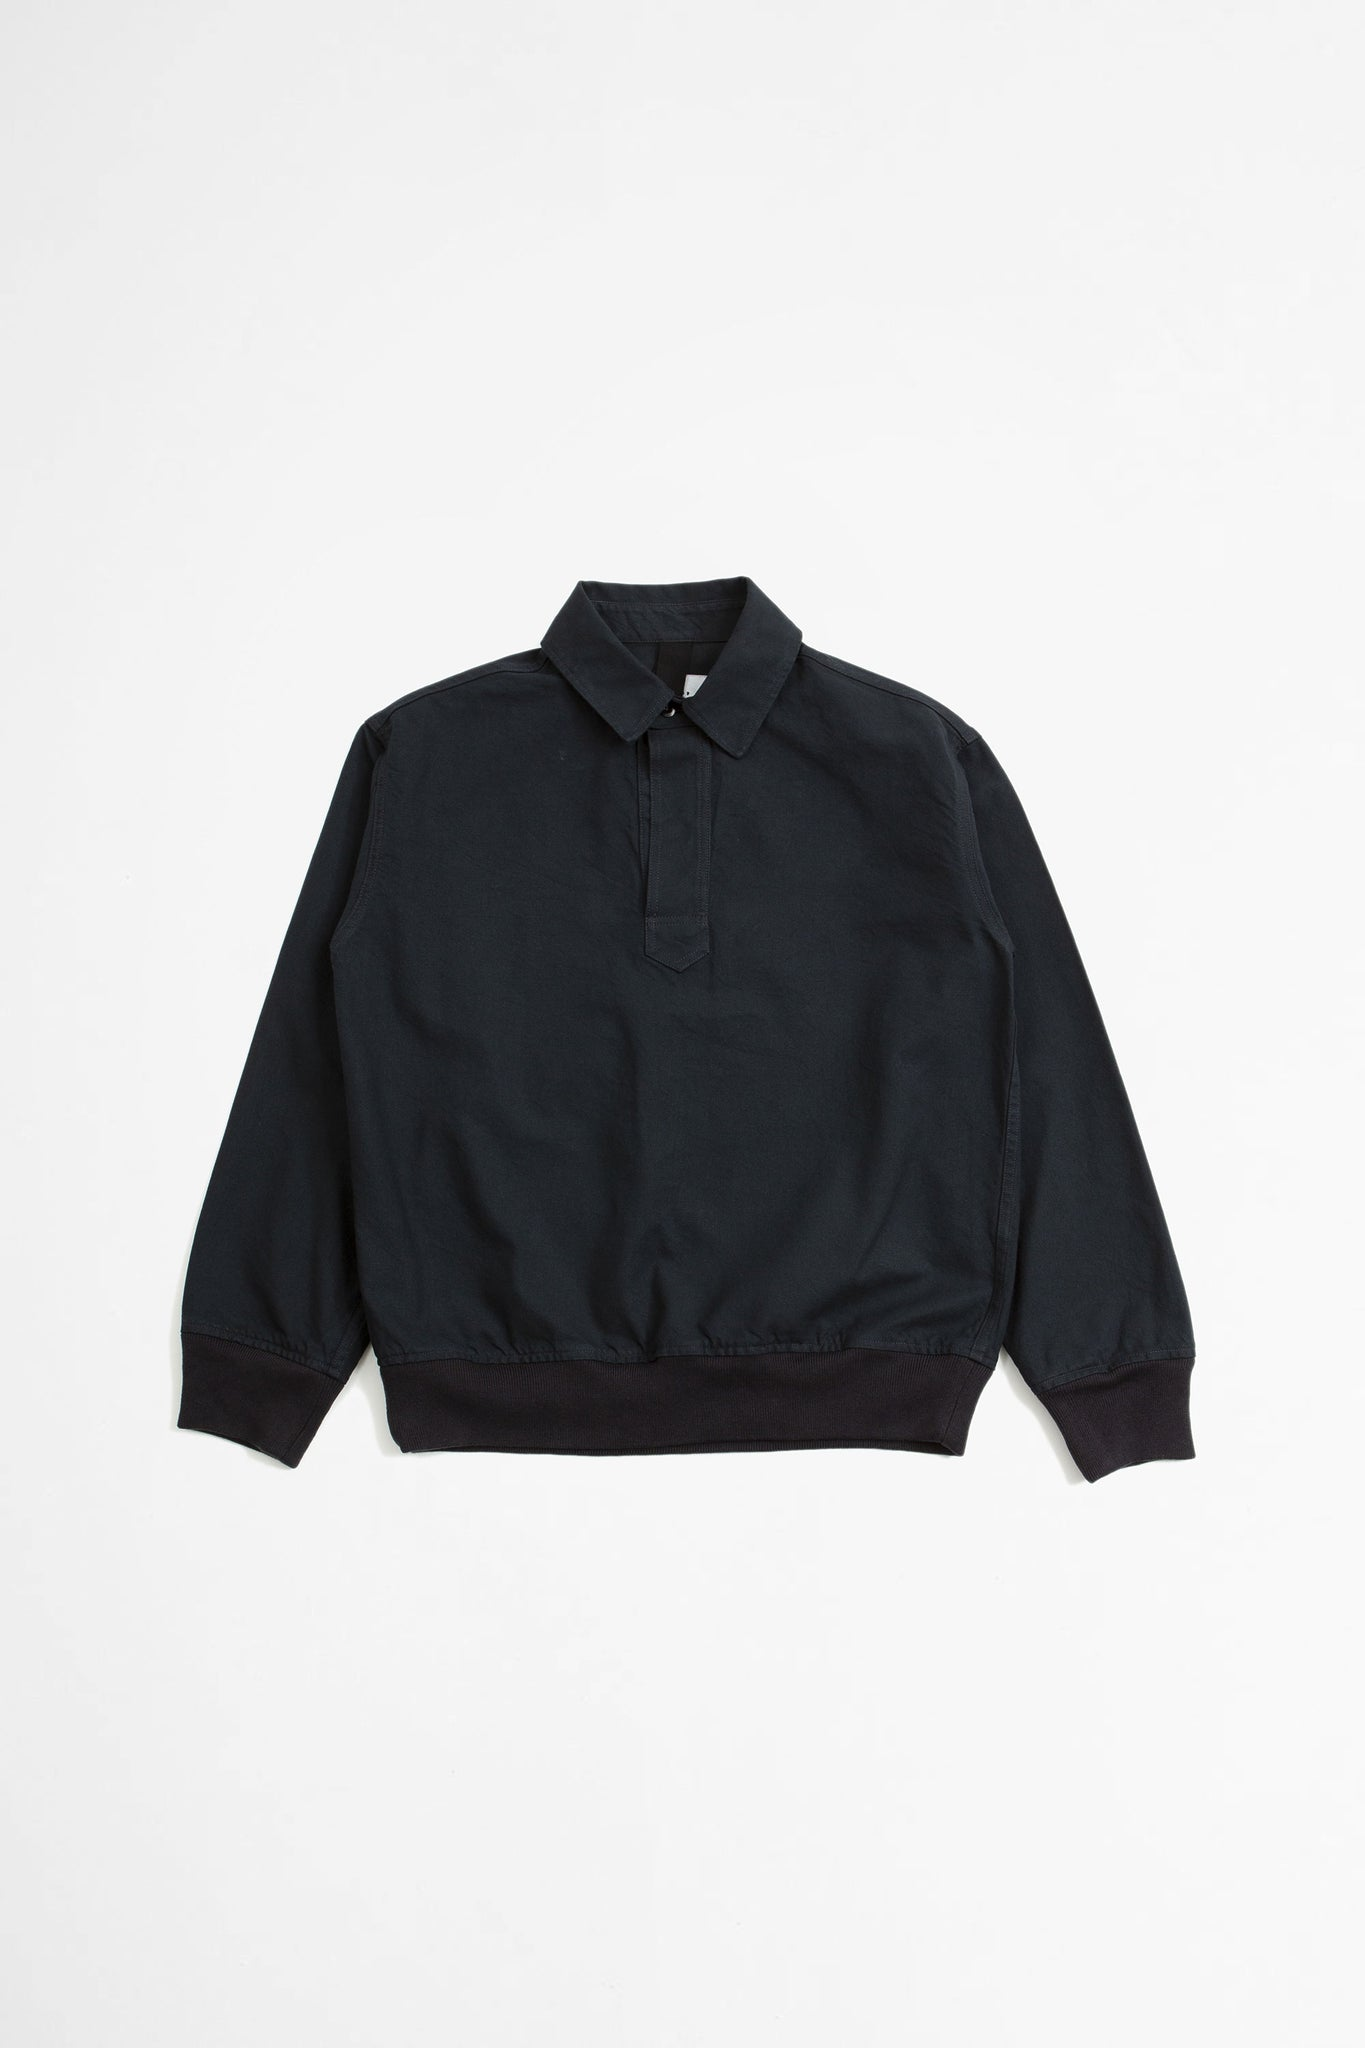 Pull on polo workwear cotton twill ink